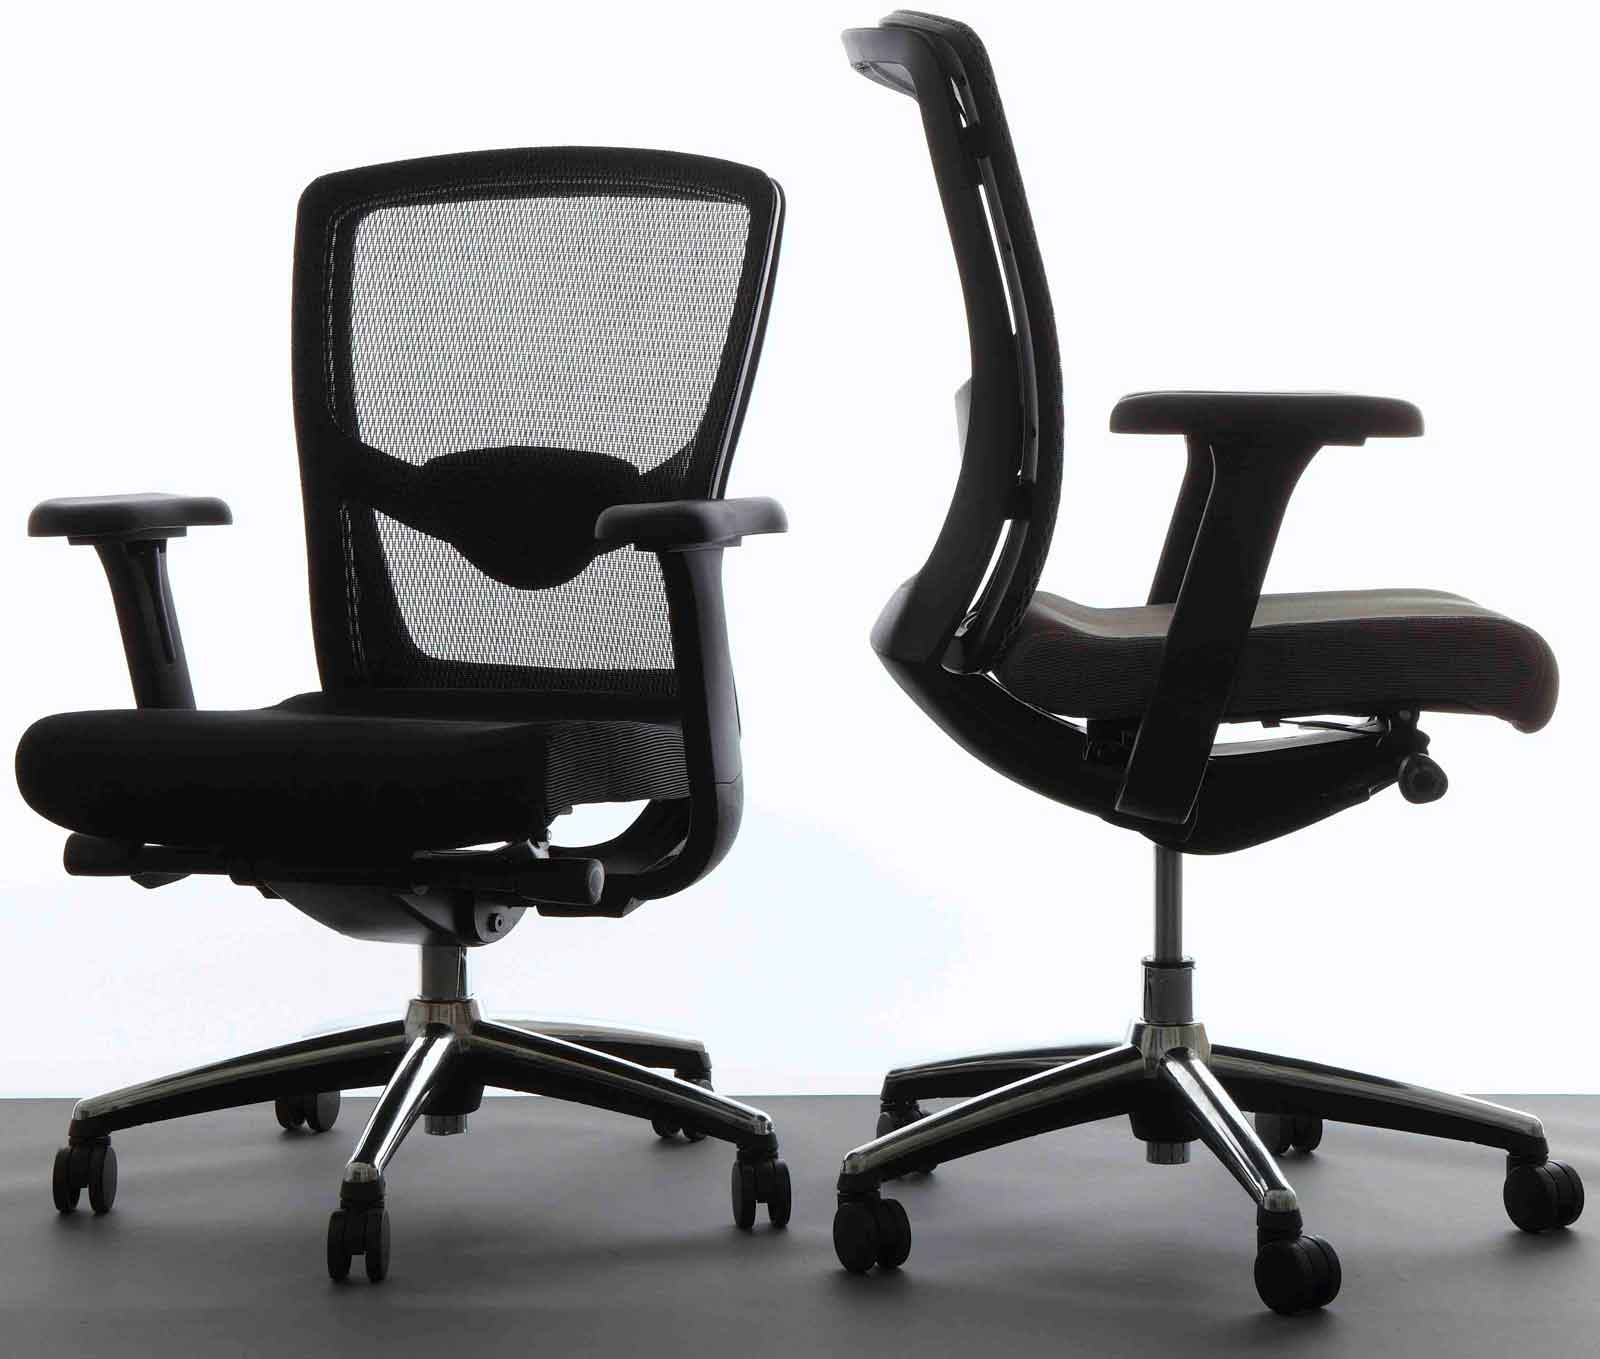 Ergonomic Desk Chairs for Office and Home | Office Furniture